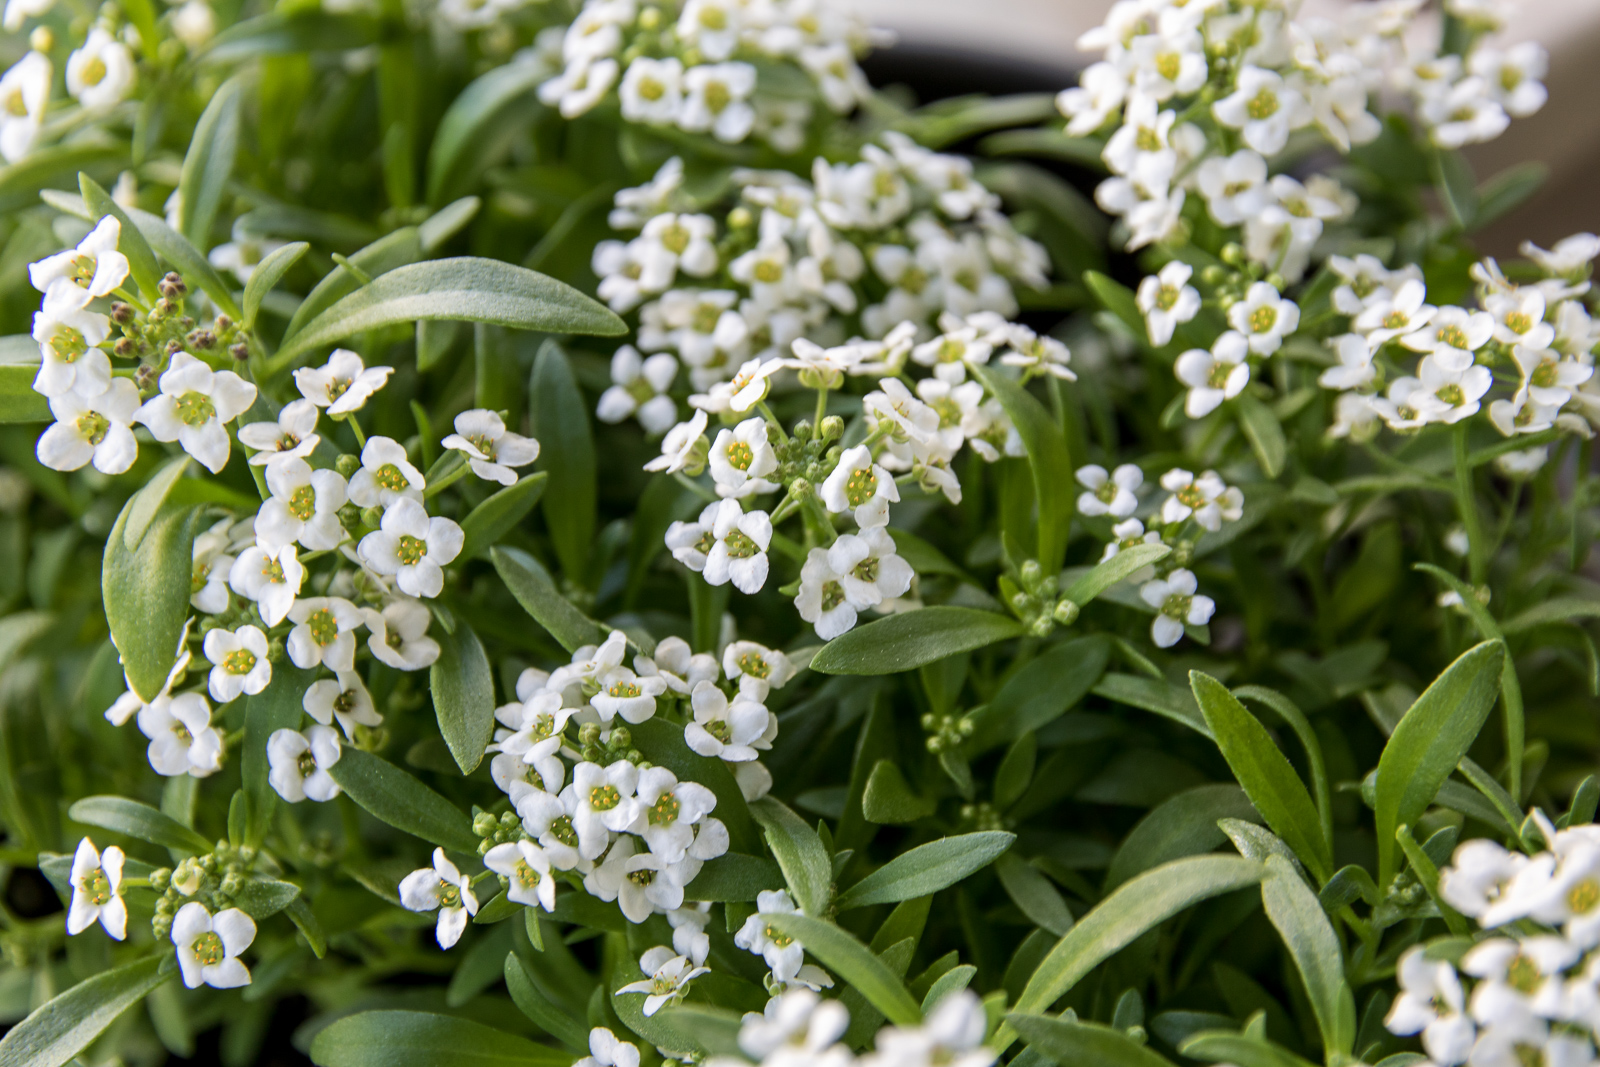 Sweet Alyssum at 50 days